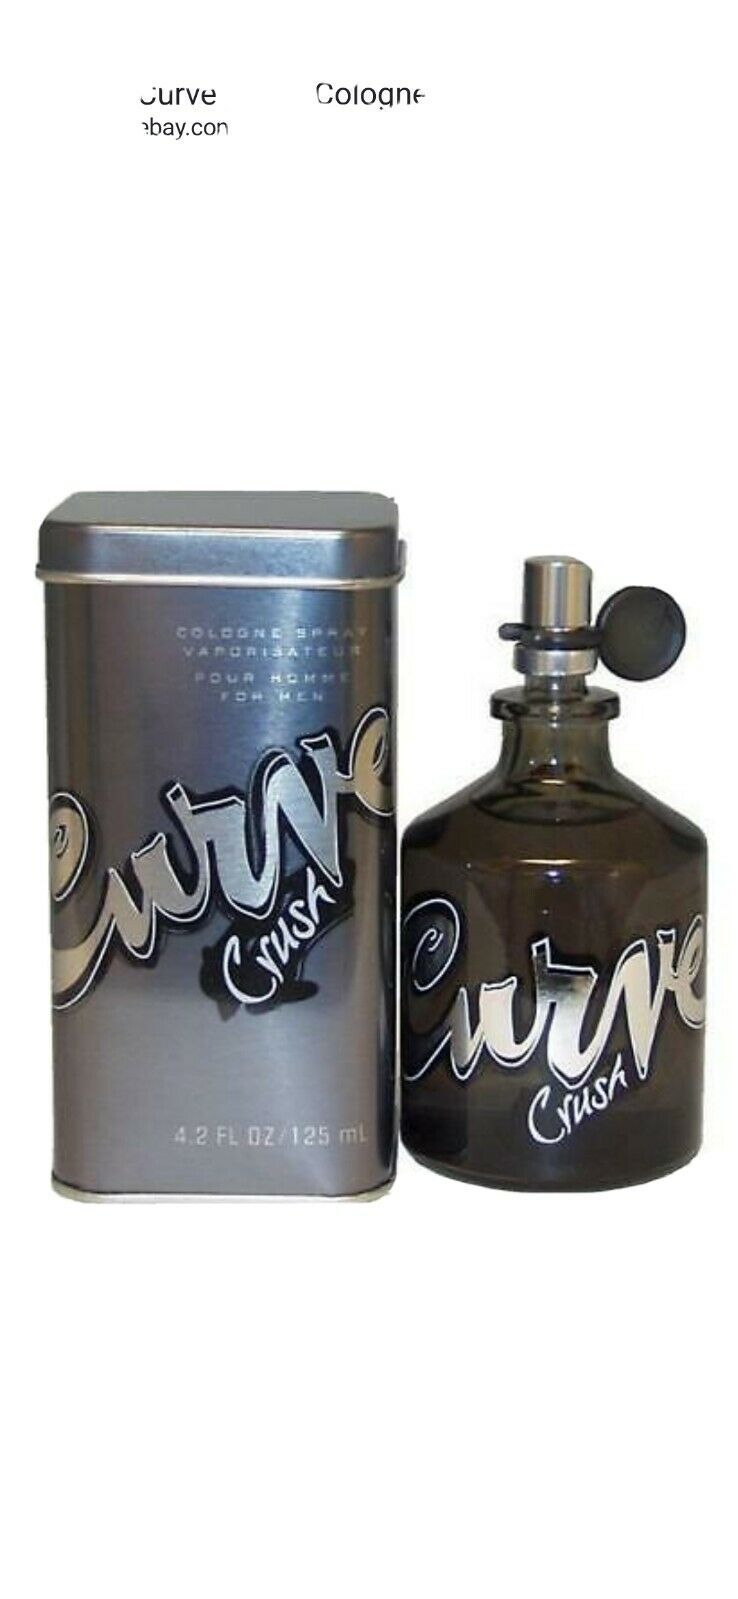 Primary image for Liz Claiborne Curve Crush 4.2oz /125 Men's Eau de Cologne. New with box.